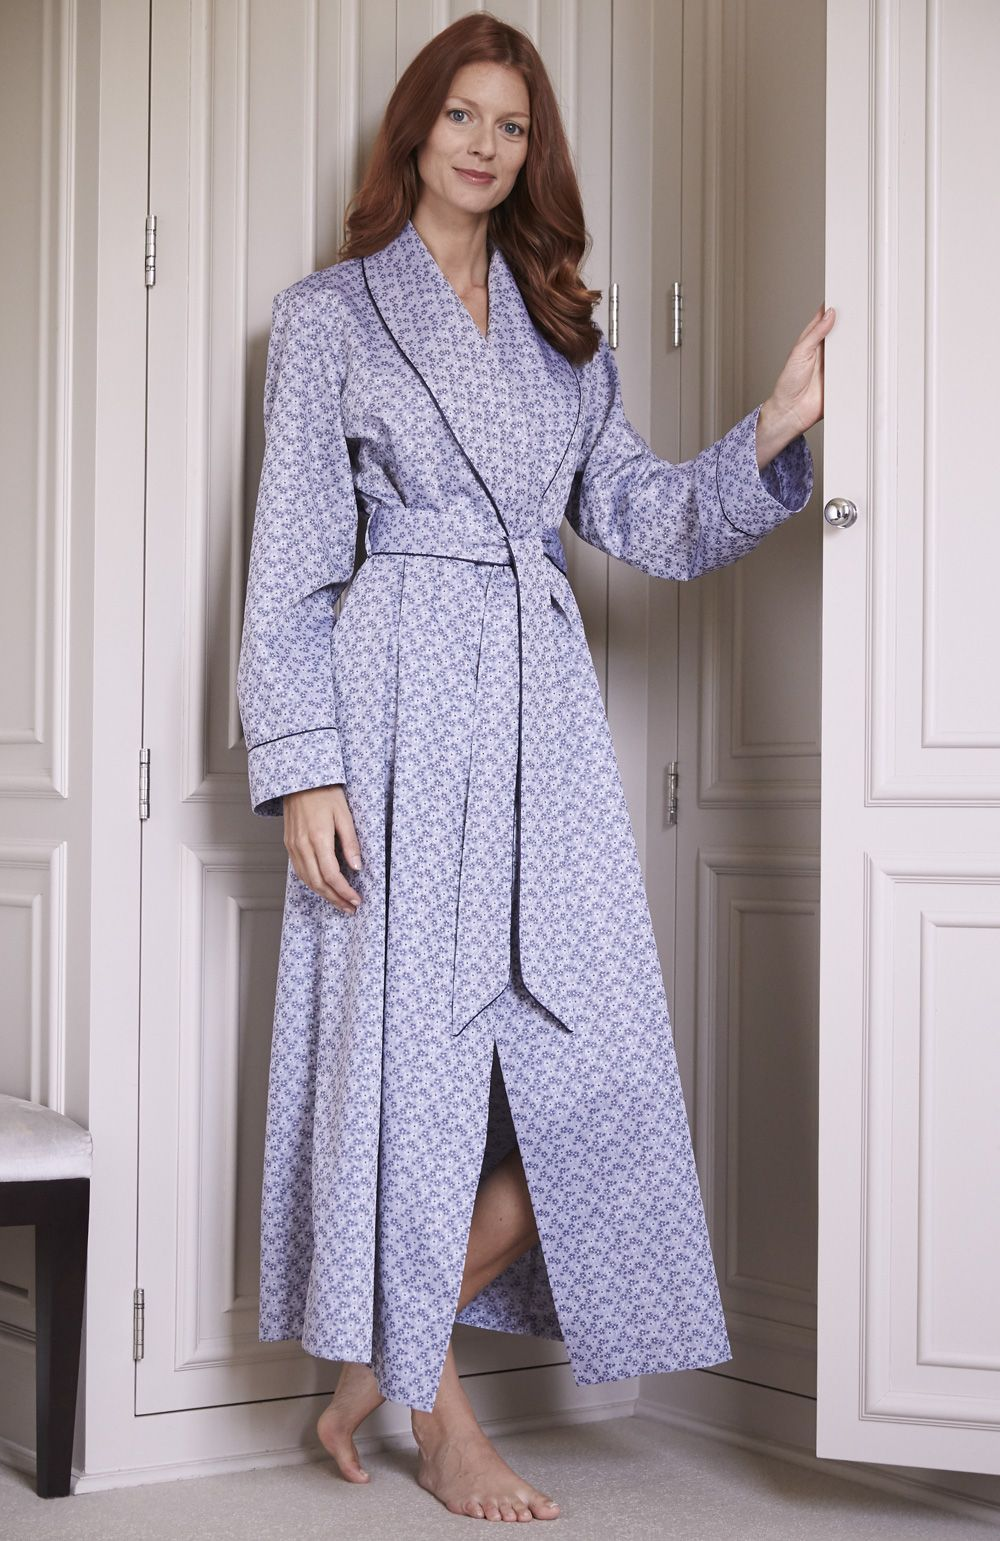 Blossom Jacquard Gown | Jacquard fabric, Gowns and Pyjamas